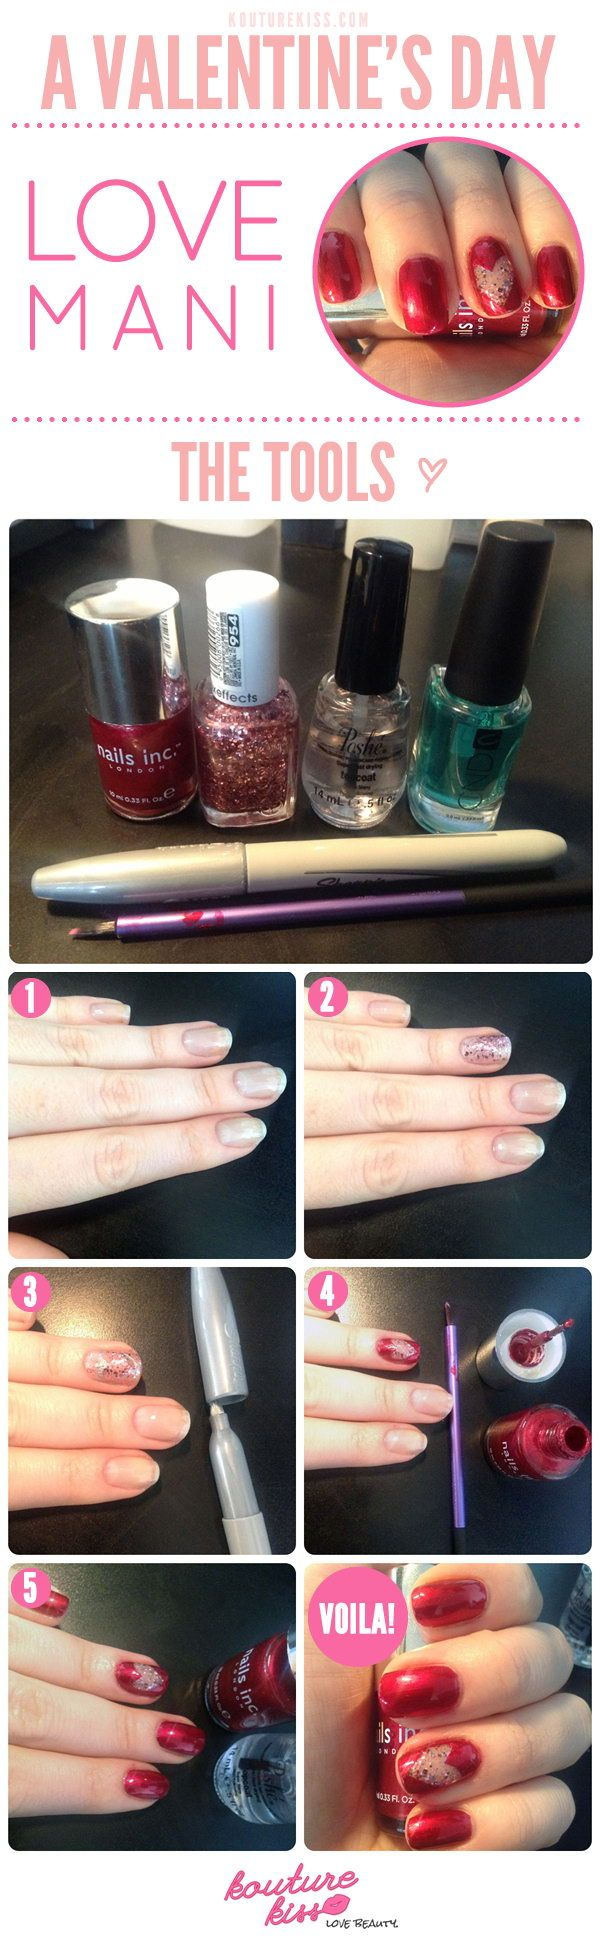 DIY Valentines Manicure, http://hative.com/step-by-step-heart-nail-art-designs-for-valentines-day/